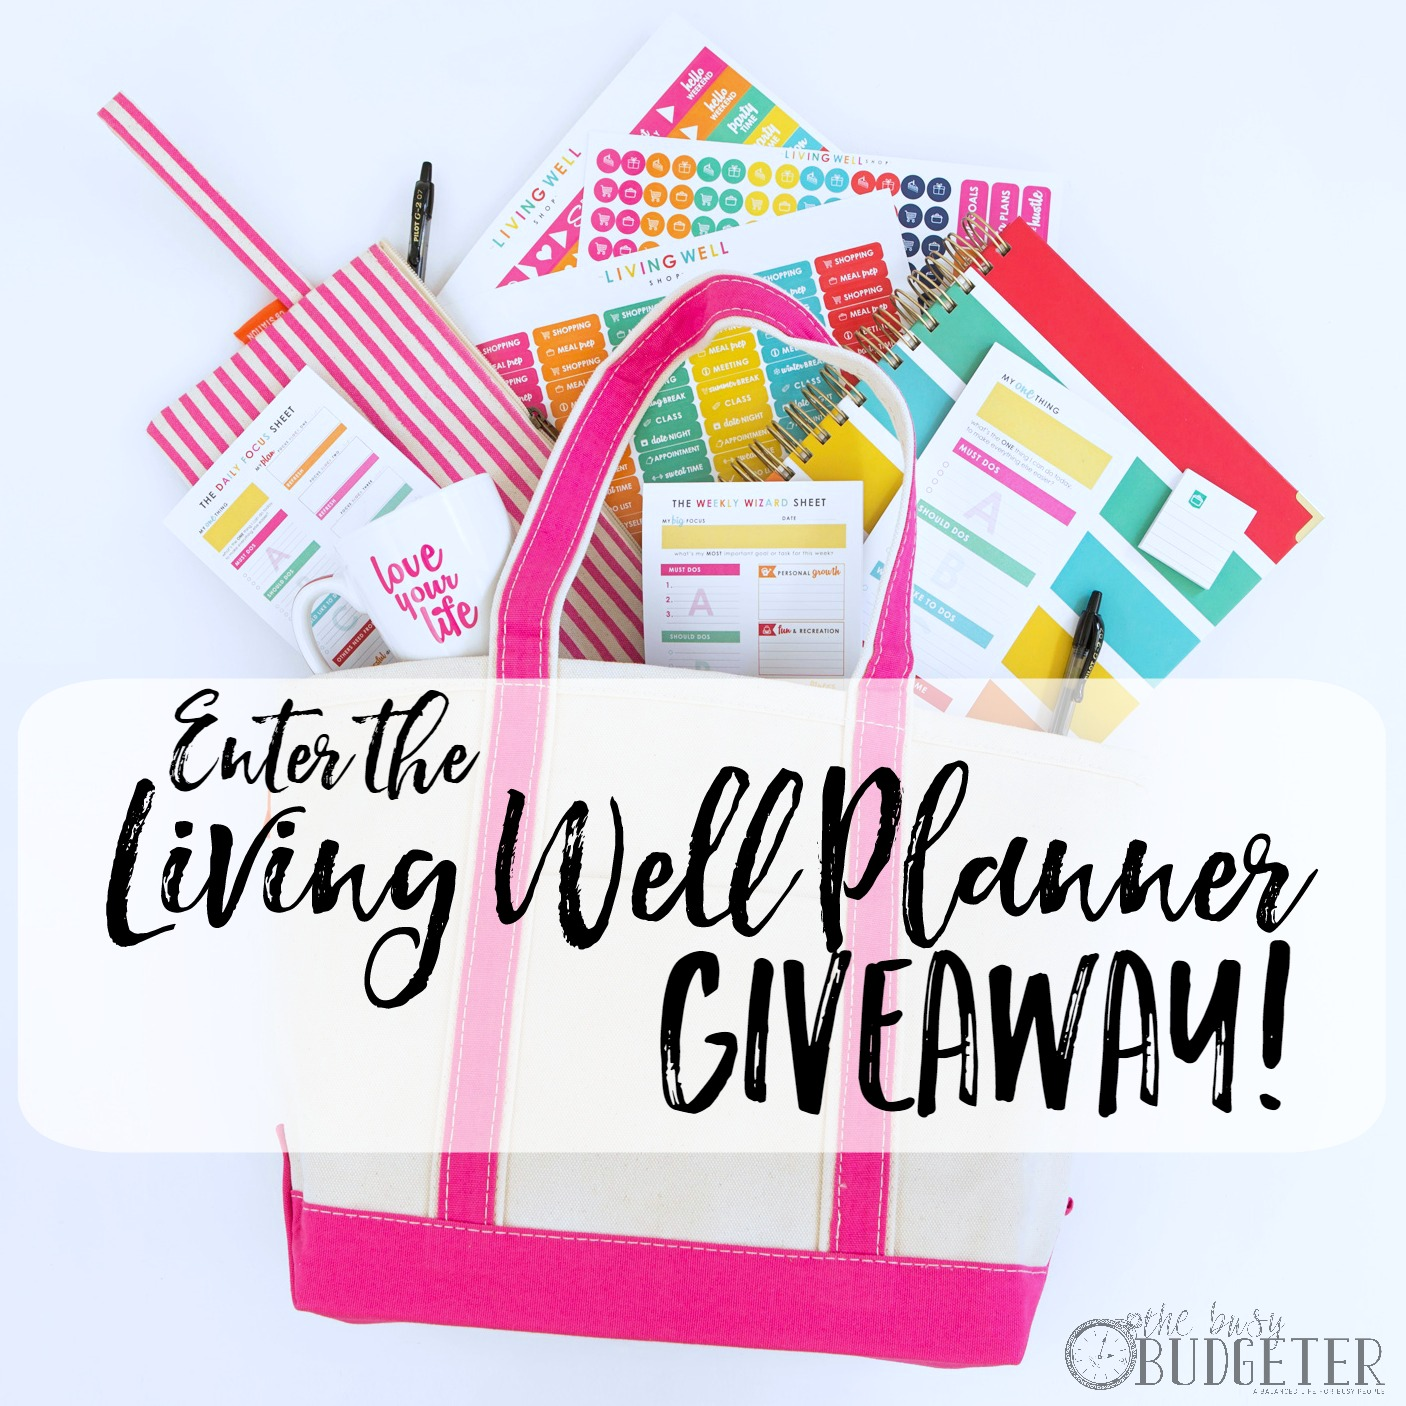 Totally want one of these - Living Well Planner from the Living Well Spending Less Blog! My friend has one and she loves it!